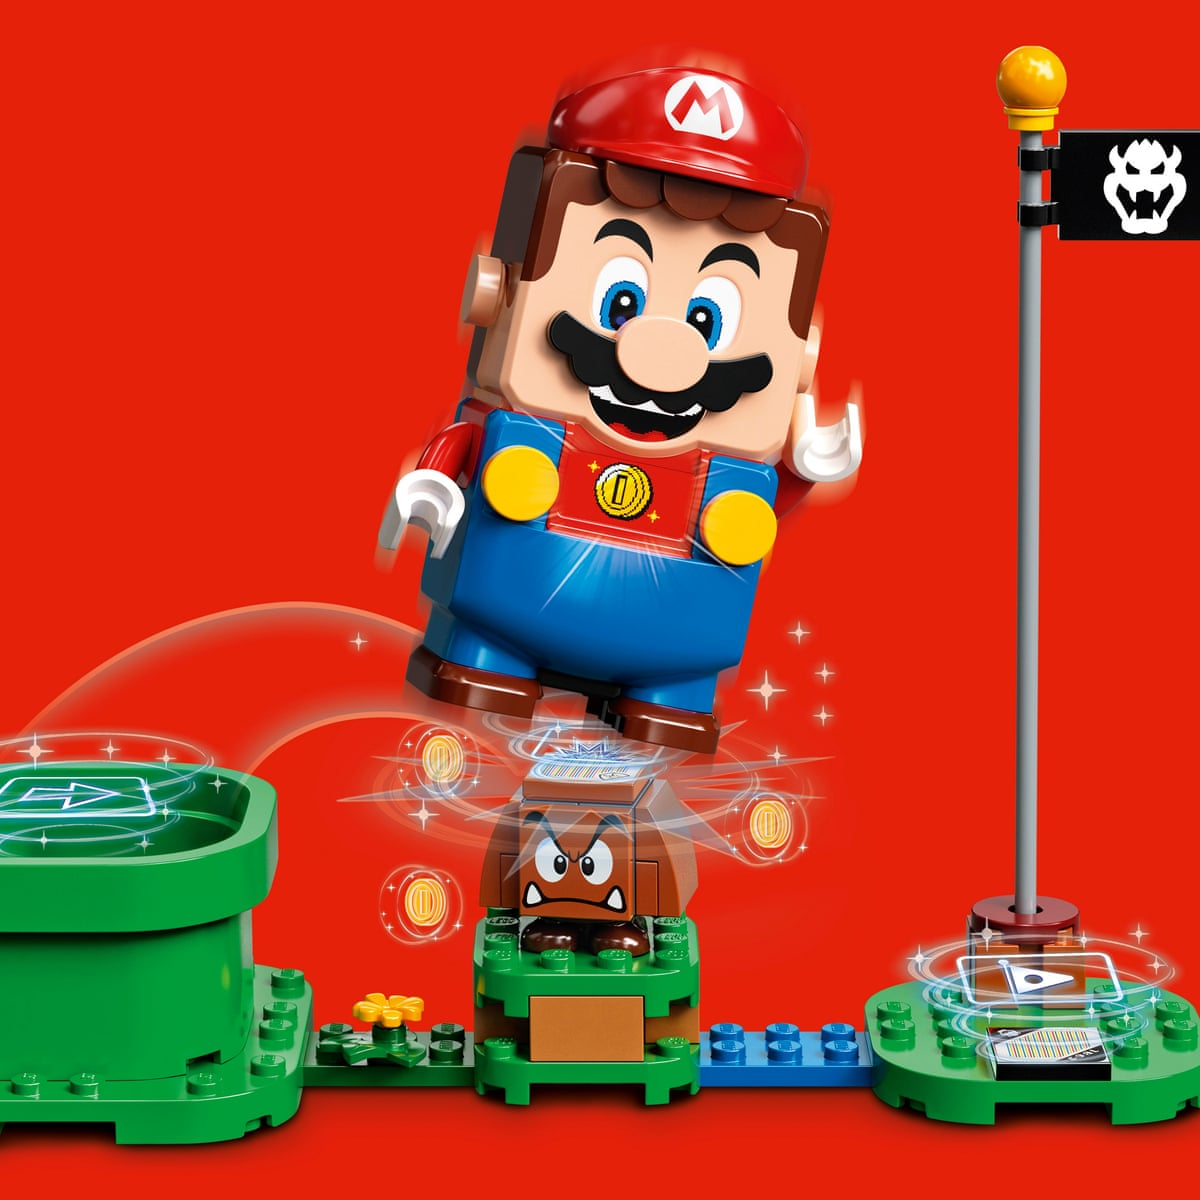 Bricks And Clicks Lego Super Mario Product Line To Hit Shelves This Year Games The Guardian